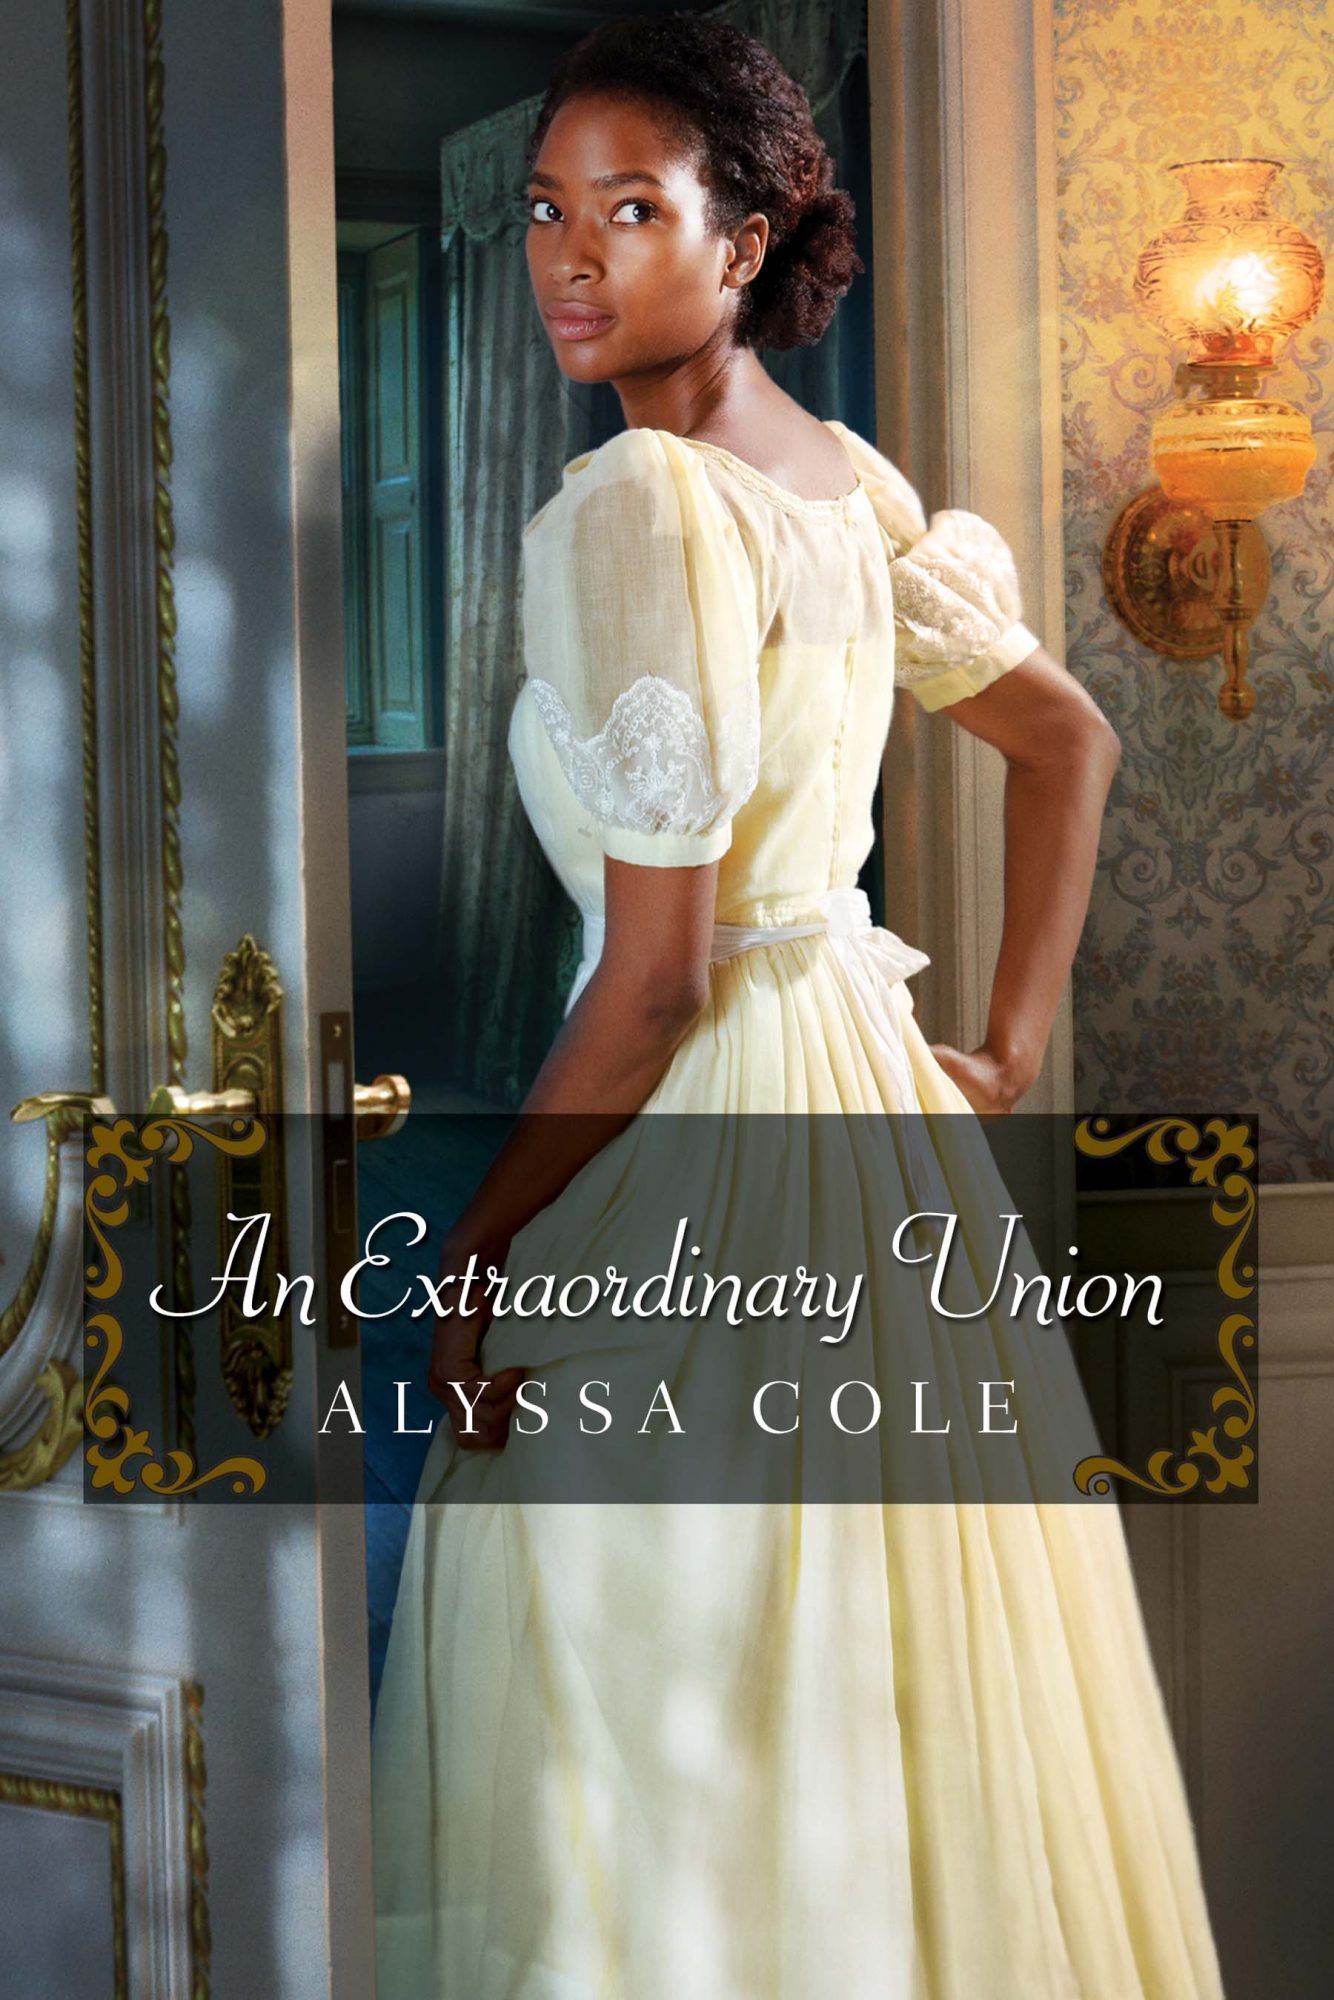 An Extraordinary Union, by Alyssa Cole